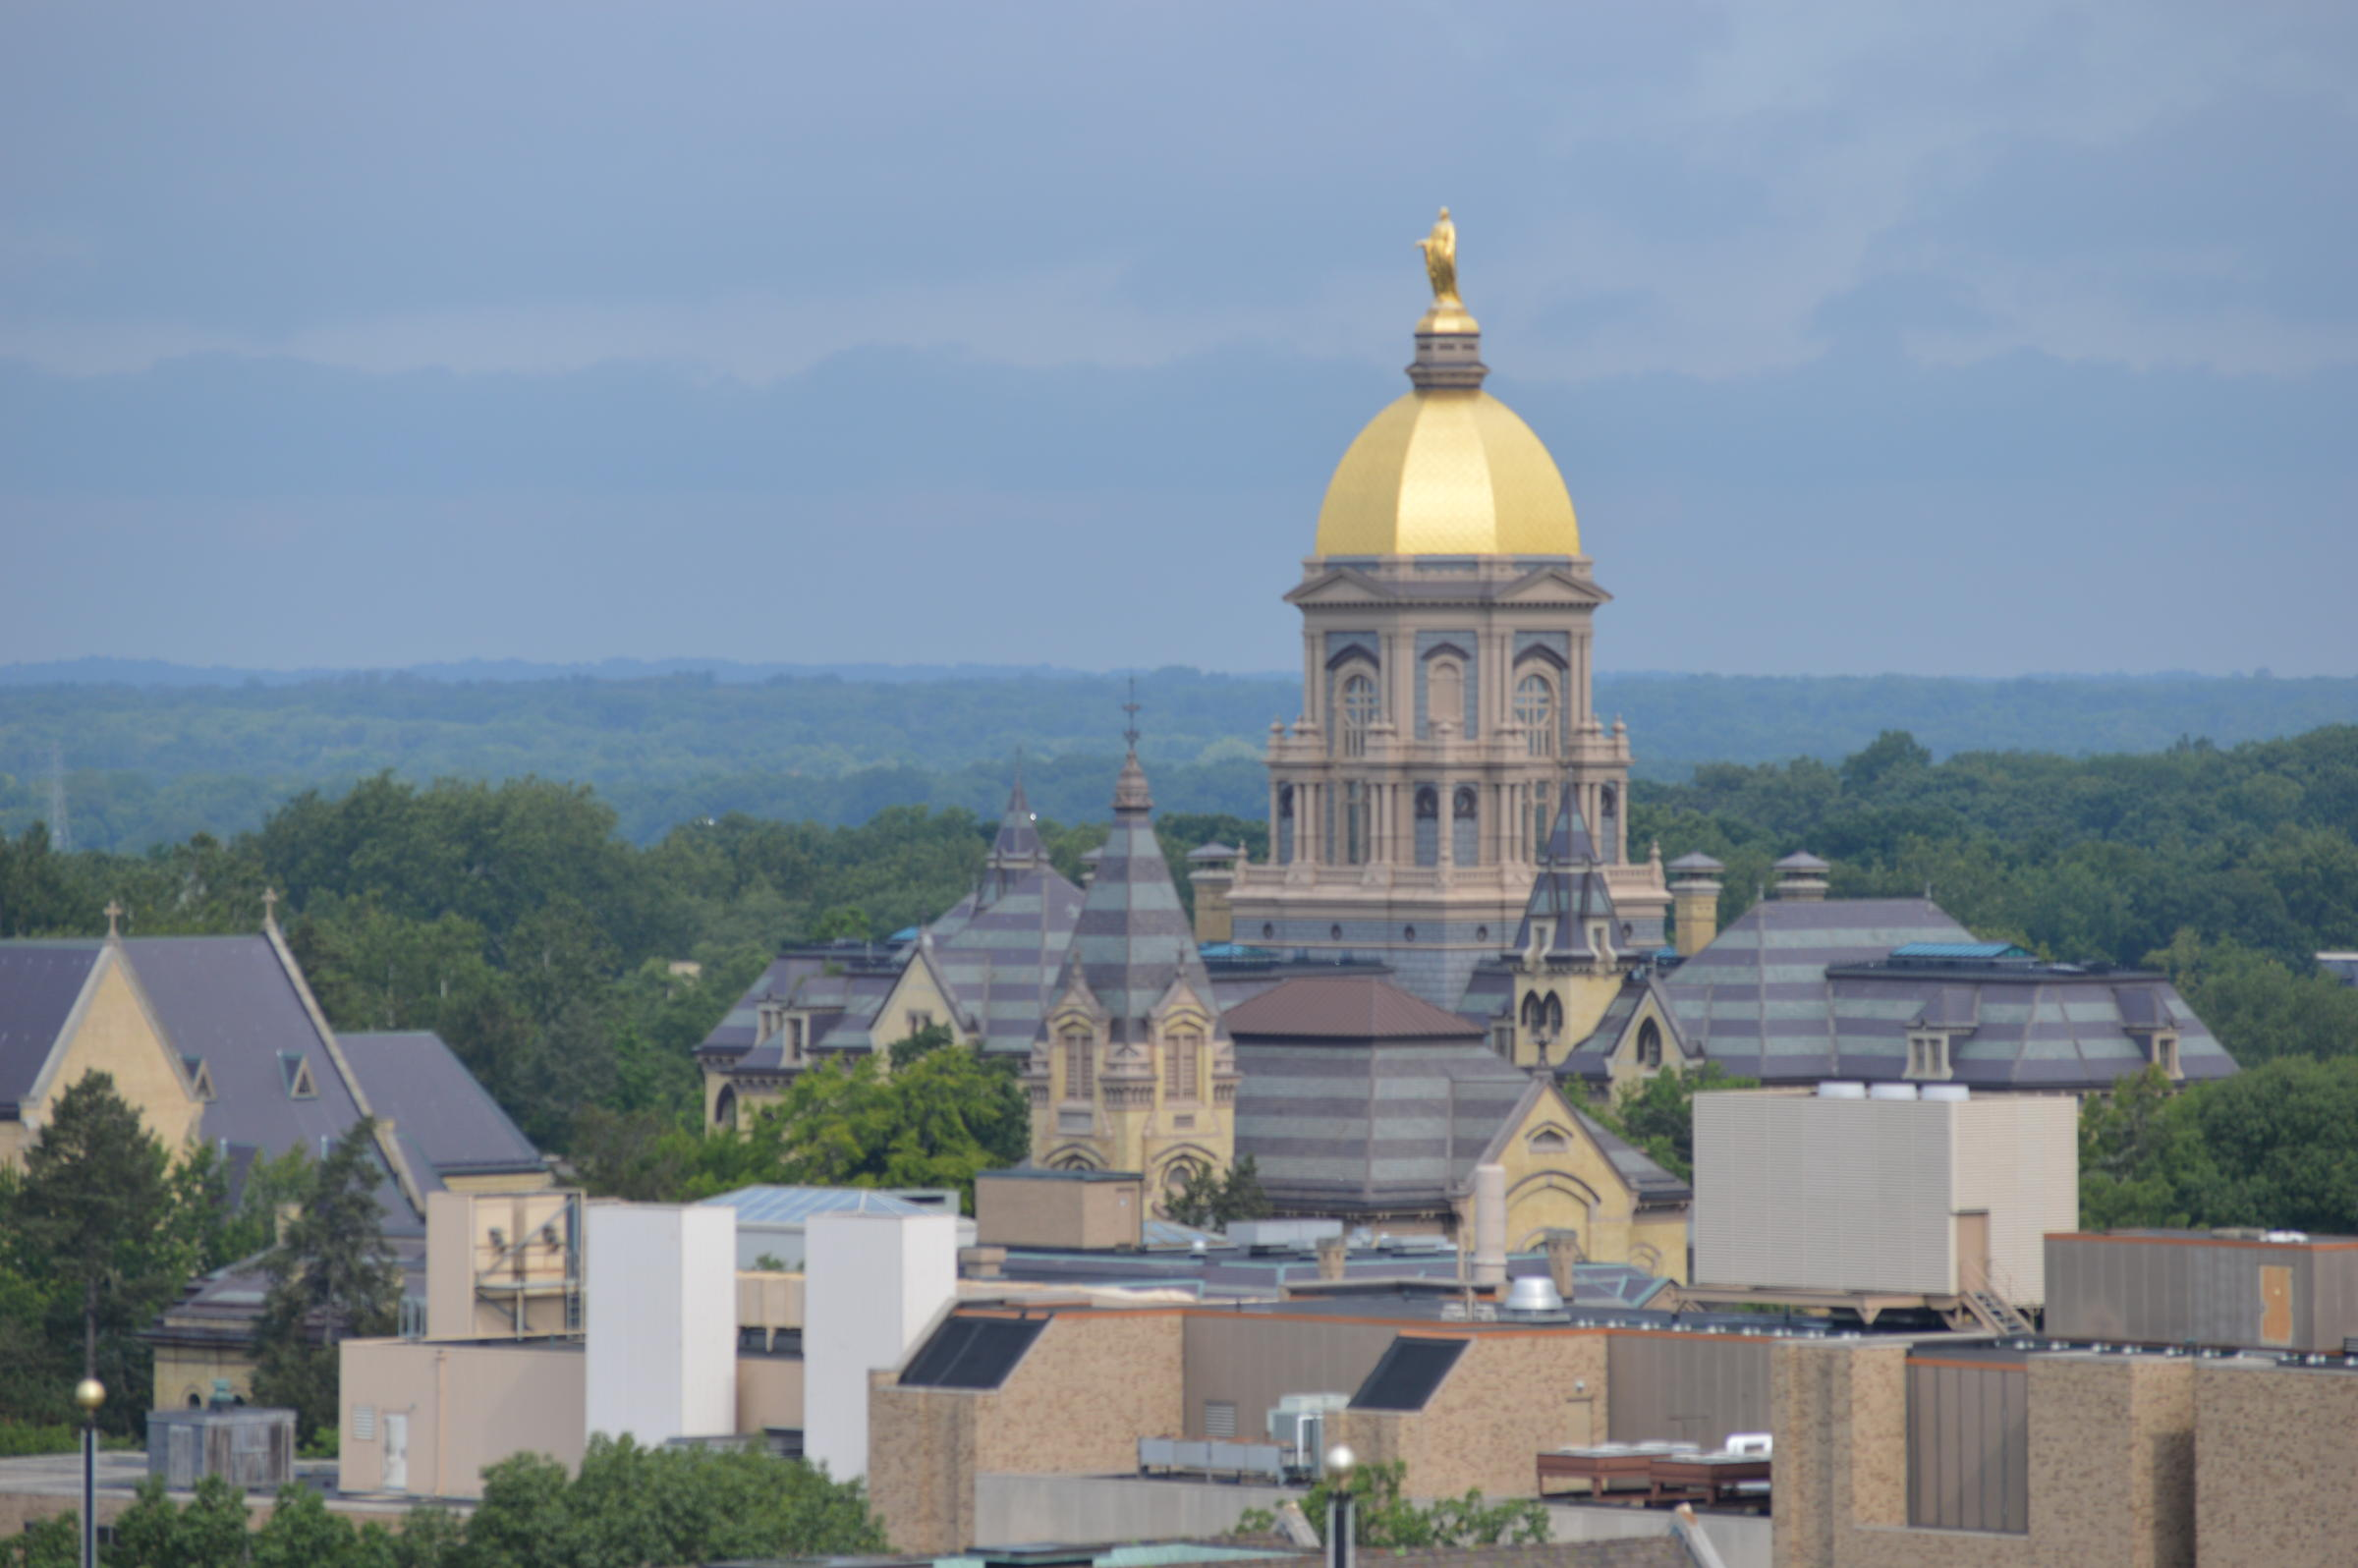 The University of Notre Dame golden dome surrounded by other campus buildings.